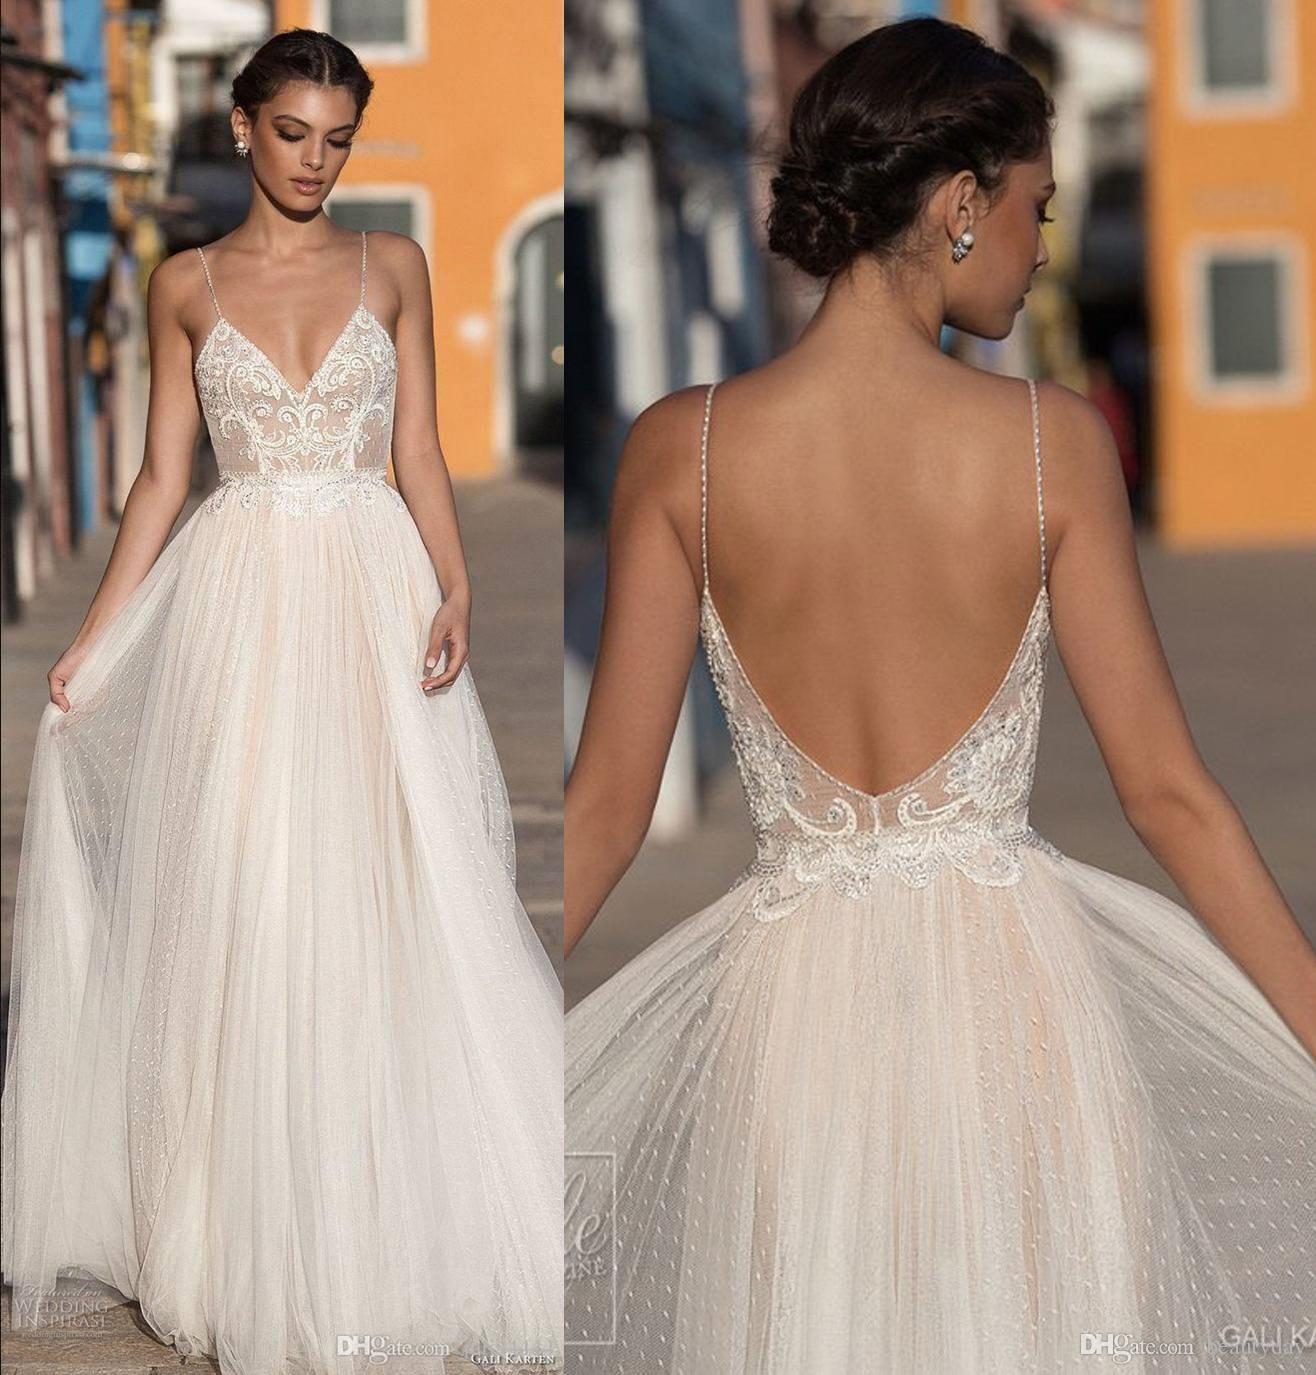 51e40a1050e Discount 2019 Wedding Dresses For Bride Beach A Line Wedding Dress  Maternity Bridal Gowns Beads Tulle Lace Sexy Backless Spaghetti Straps Boho  Plus Short A ...